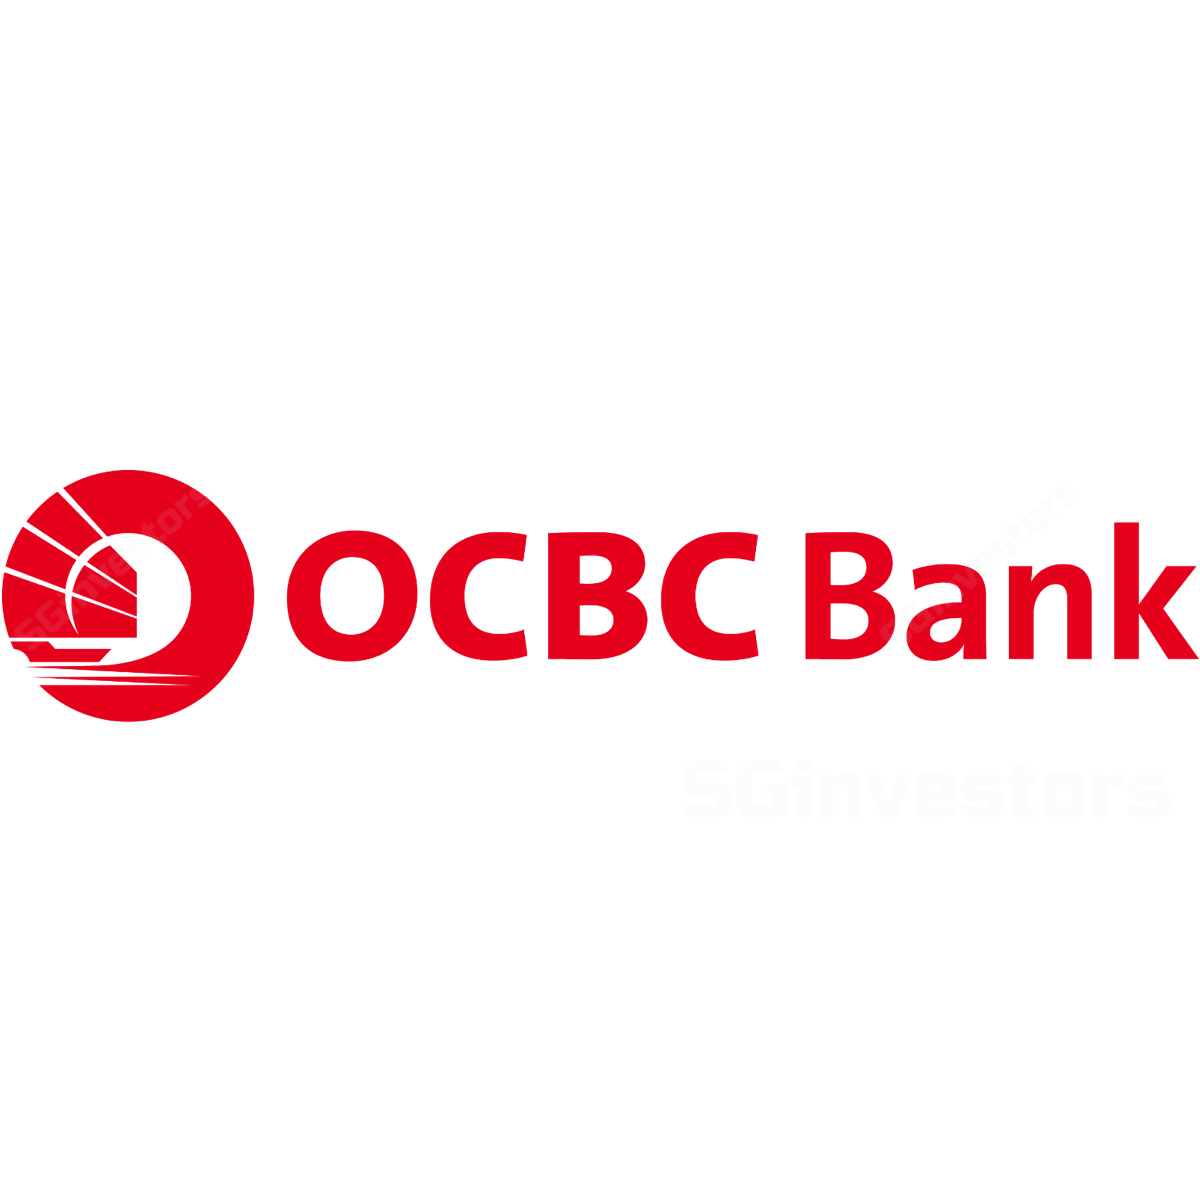 Oversea-Chinese Banking Corporation (OCBC SP) - UOB Kay Hian 2017-05-15: Key Takeaways From Analysts' Day